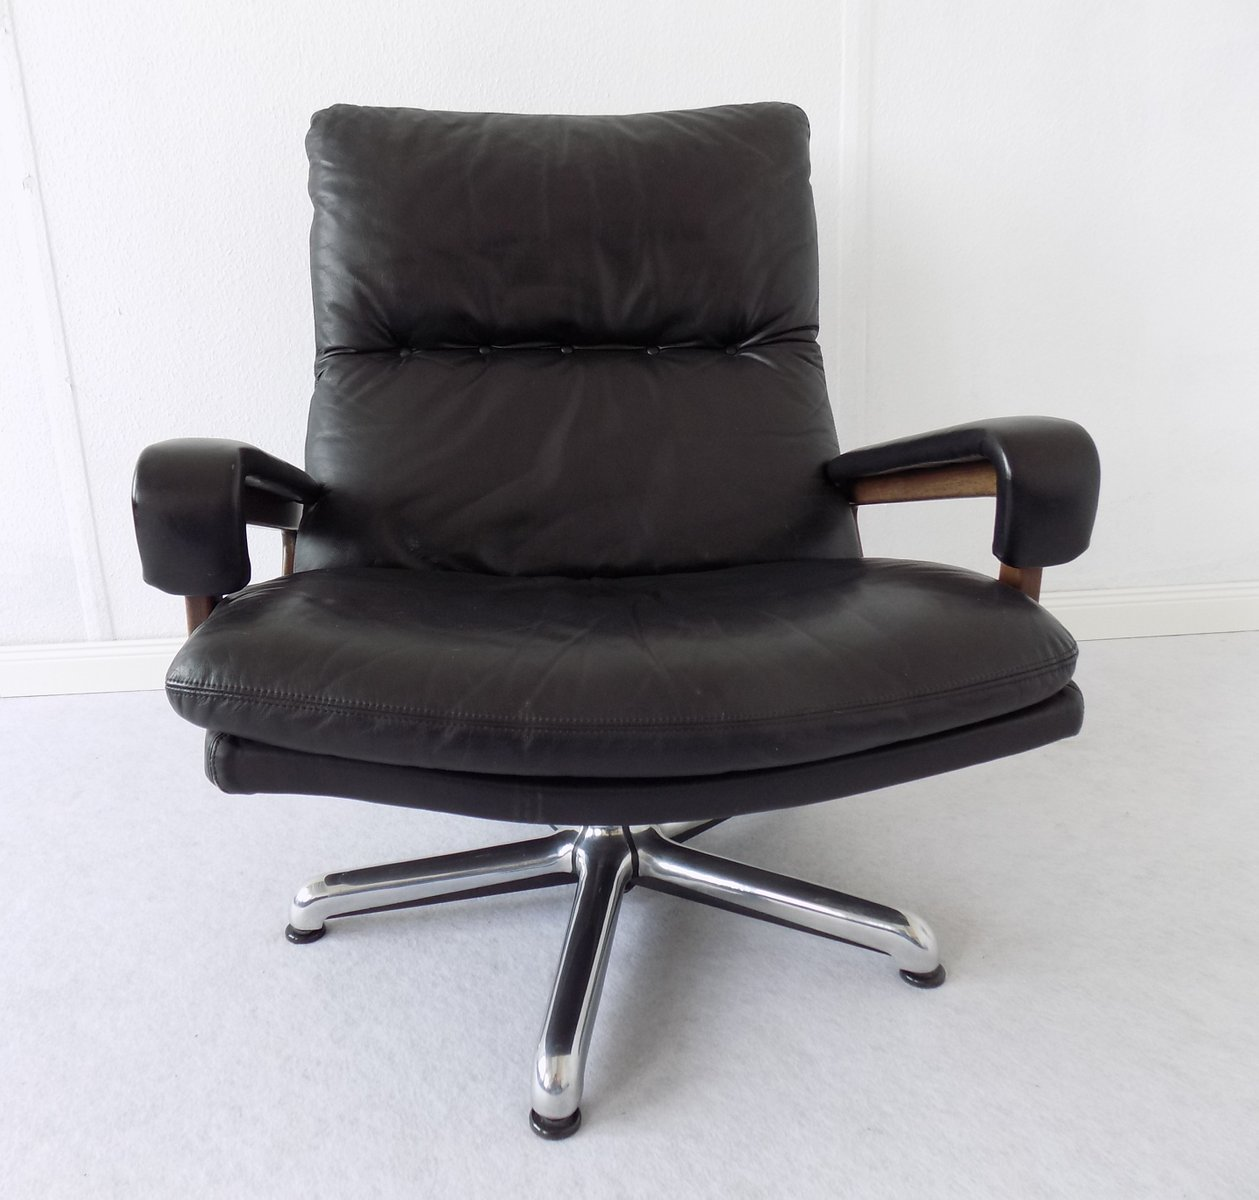 King Chair Sessel Wk Möbel Sessel